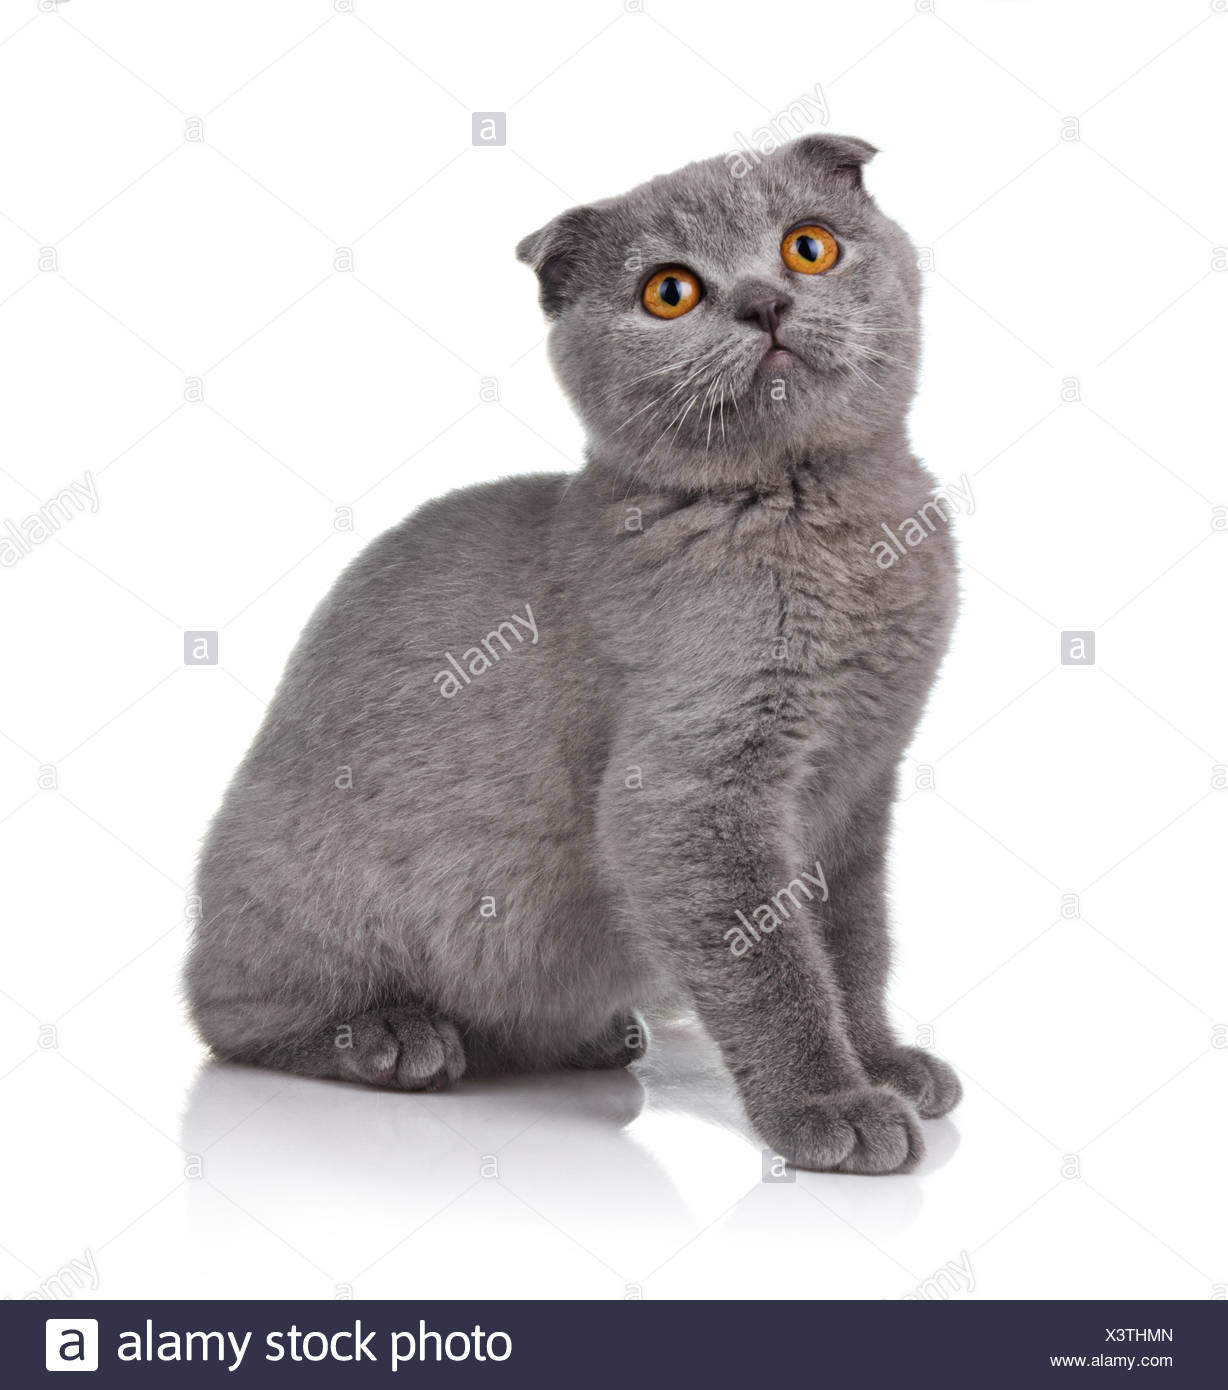 Little lop-eared kitten isolated on white - Stock Image